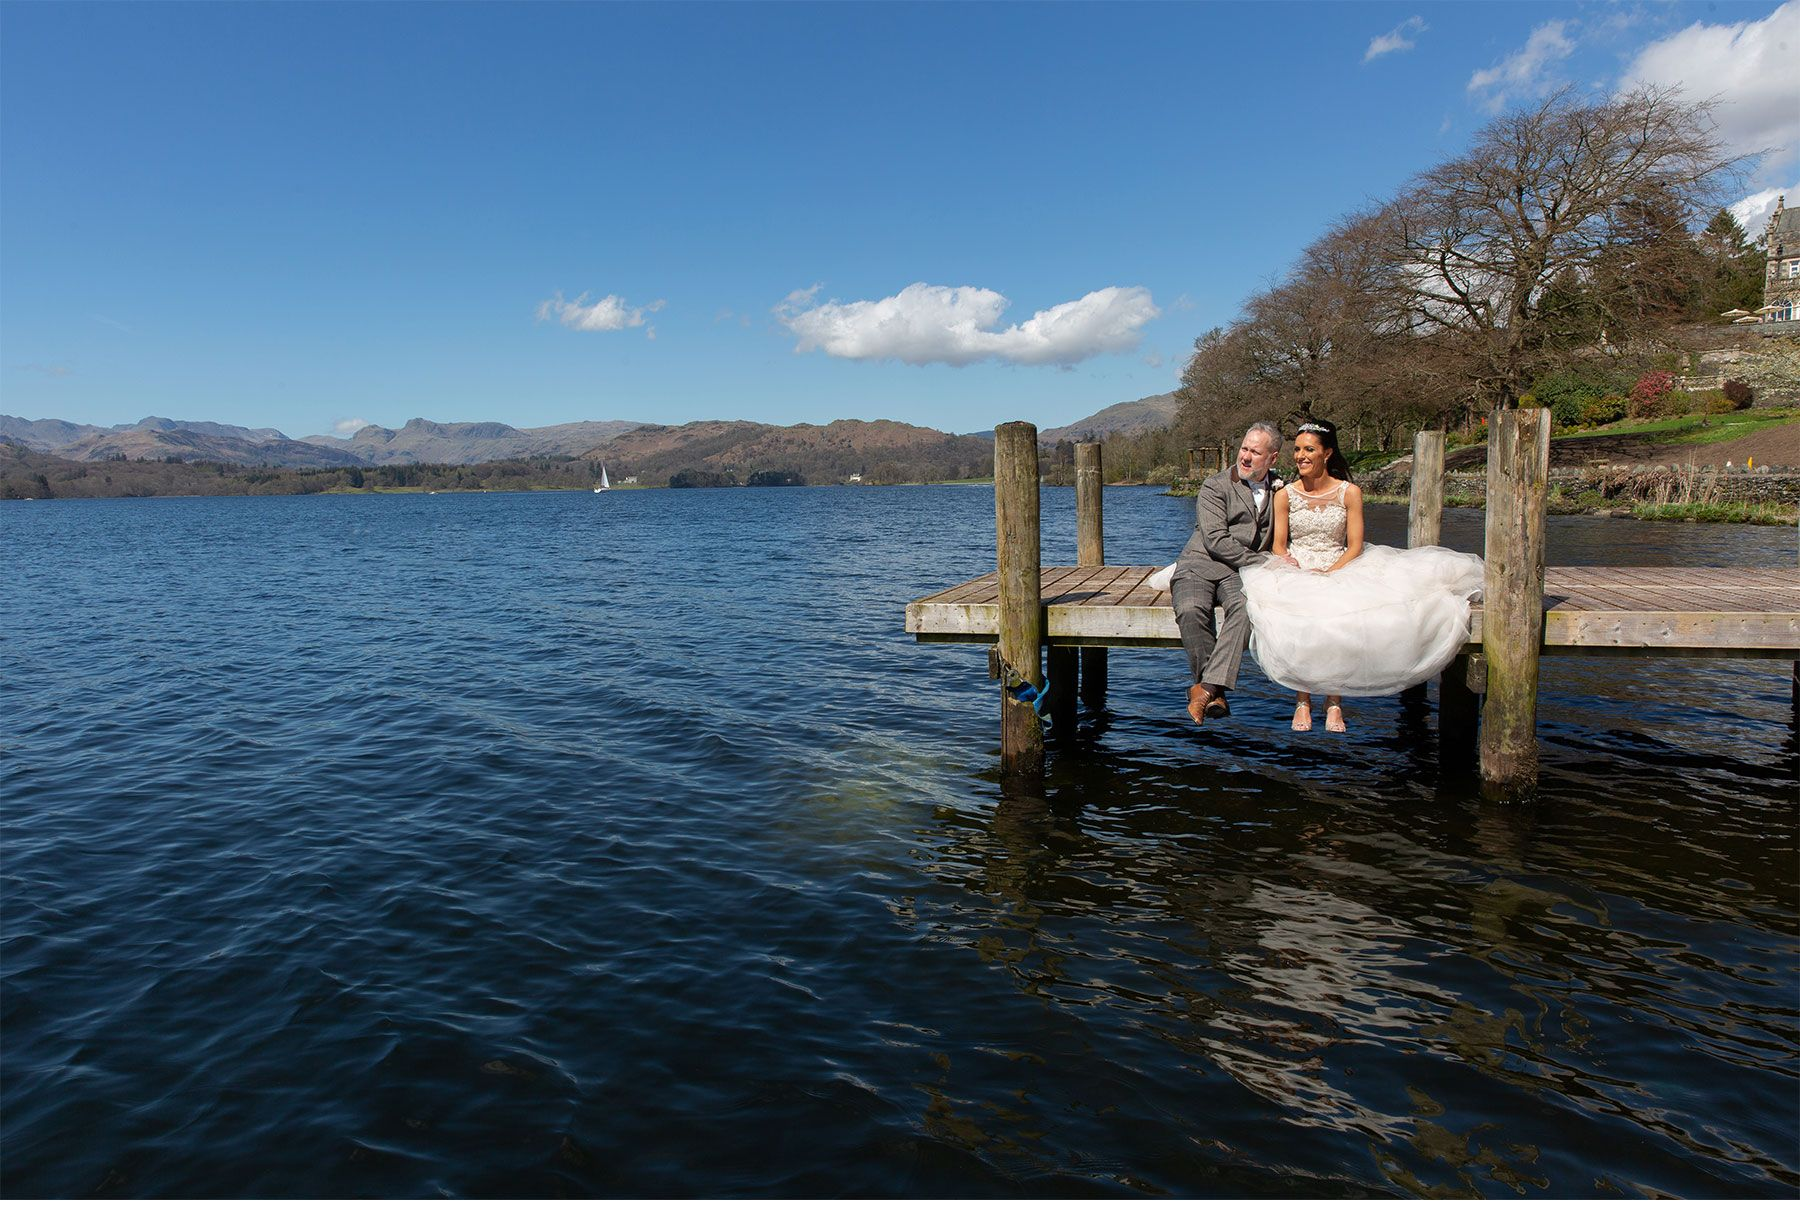 The bride and groom sat on the jetty  on Lake Windermere